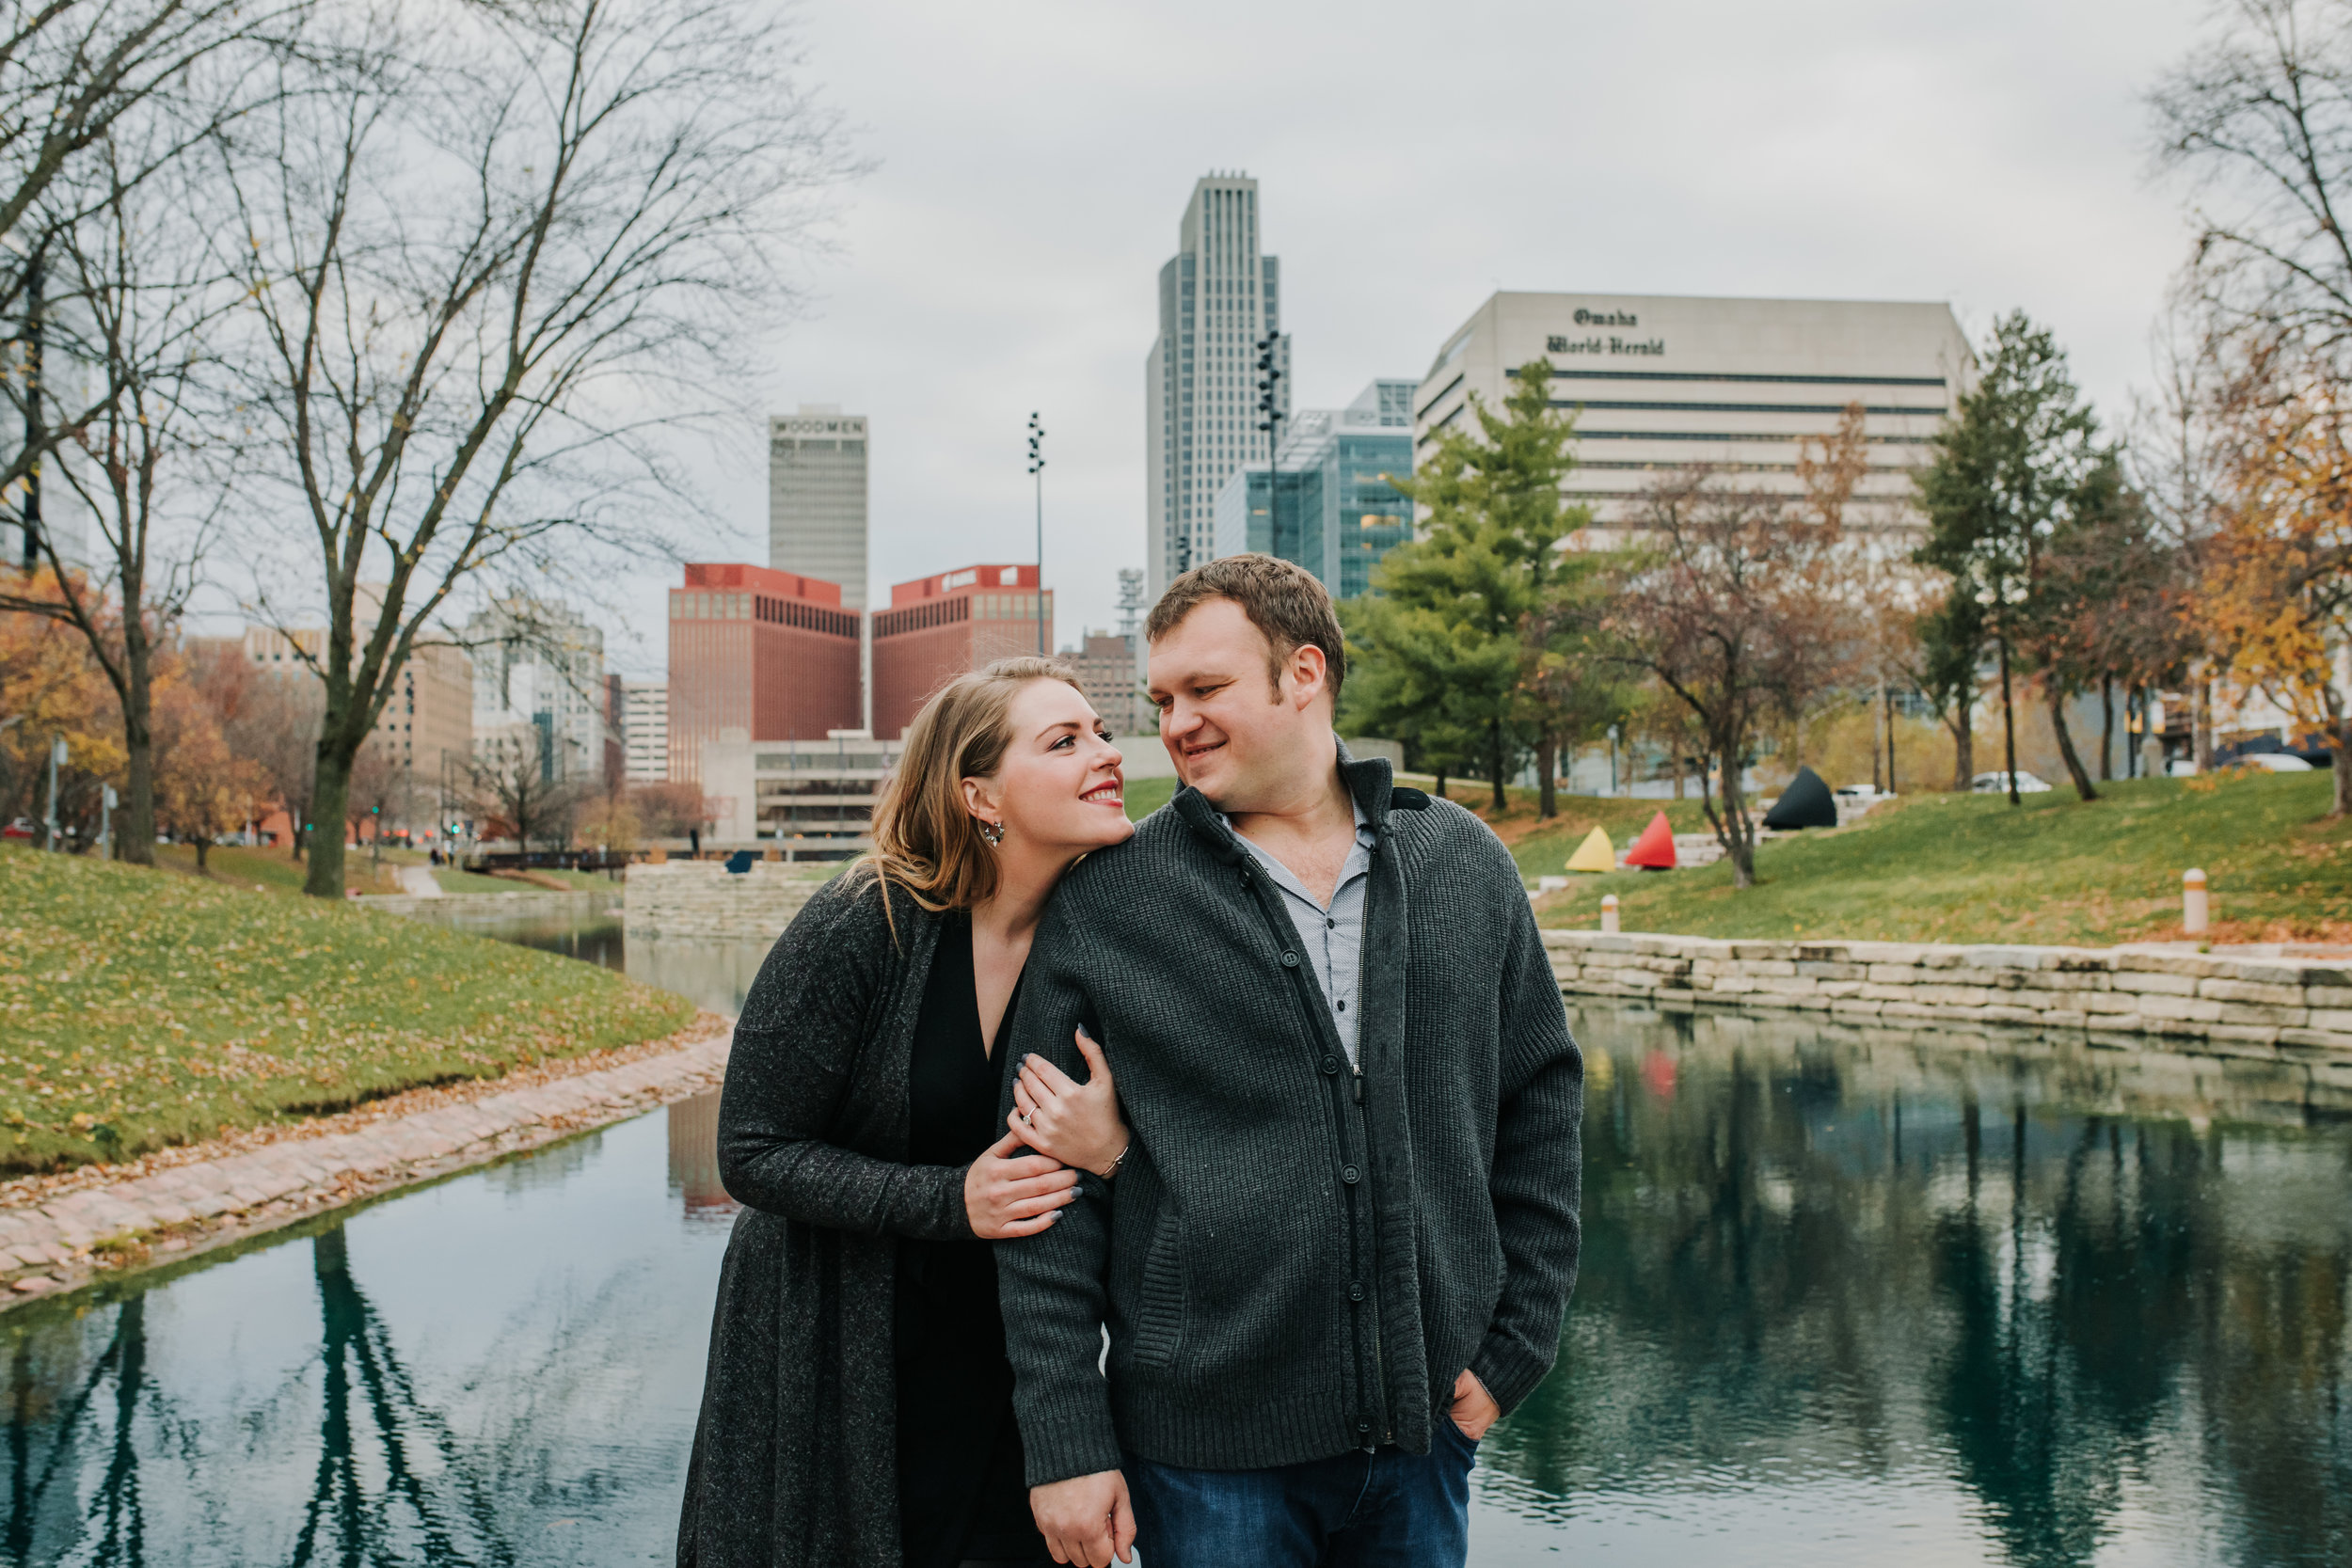 Meghan & Igor - Engaged - Nathaniel Jensen Photography - Omaha Nebraska Wedding Photograper-98.jpg